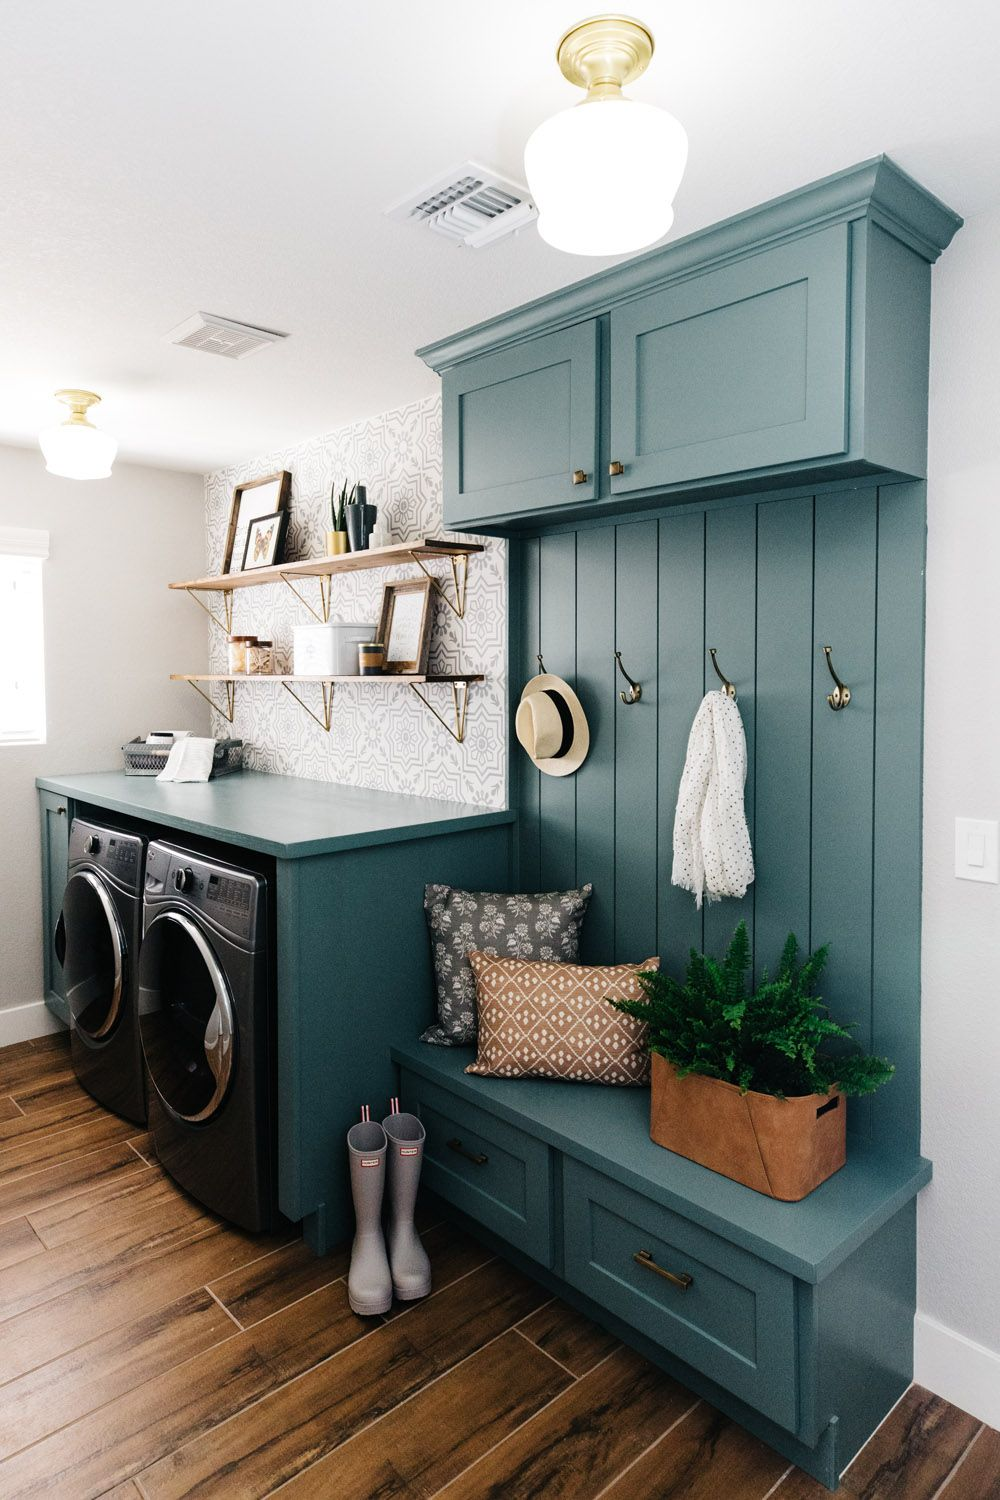 What A Clever Space To Combine The Mudroom With The Laundry Room